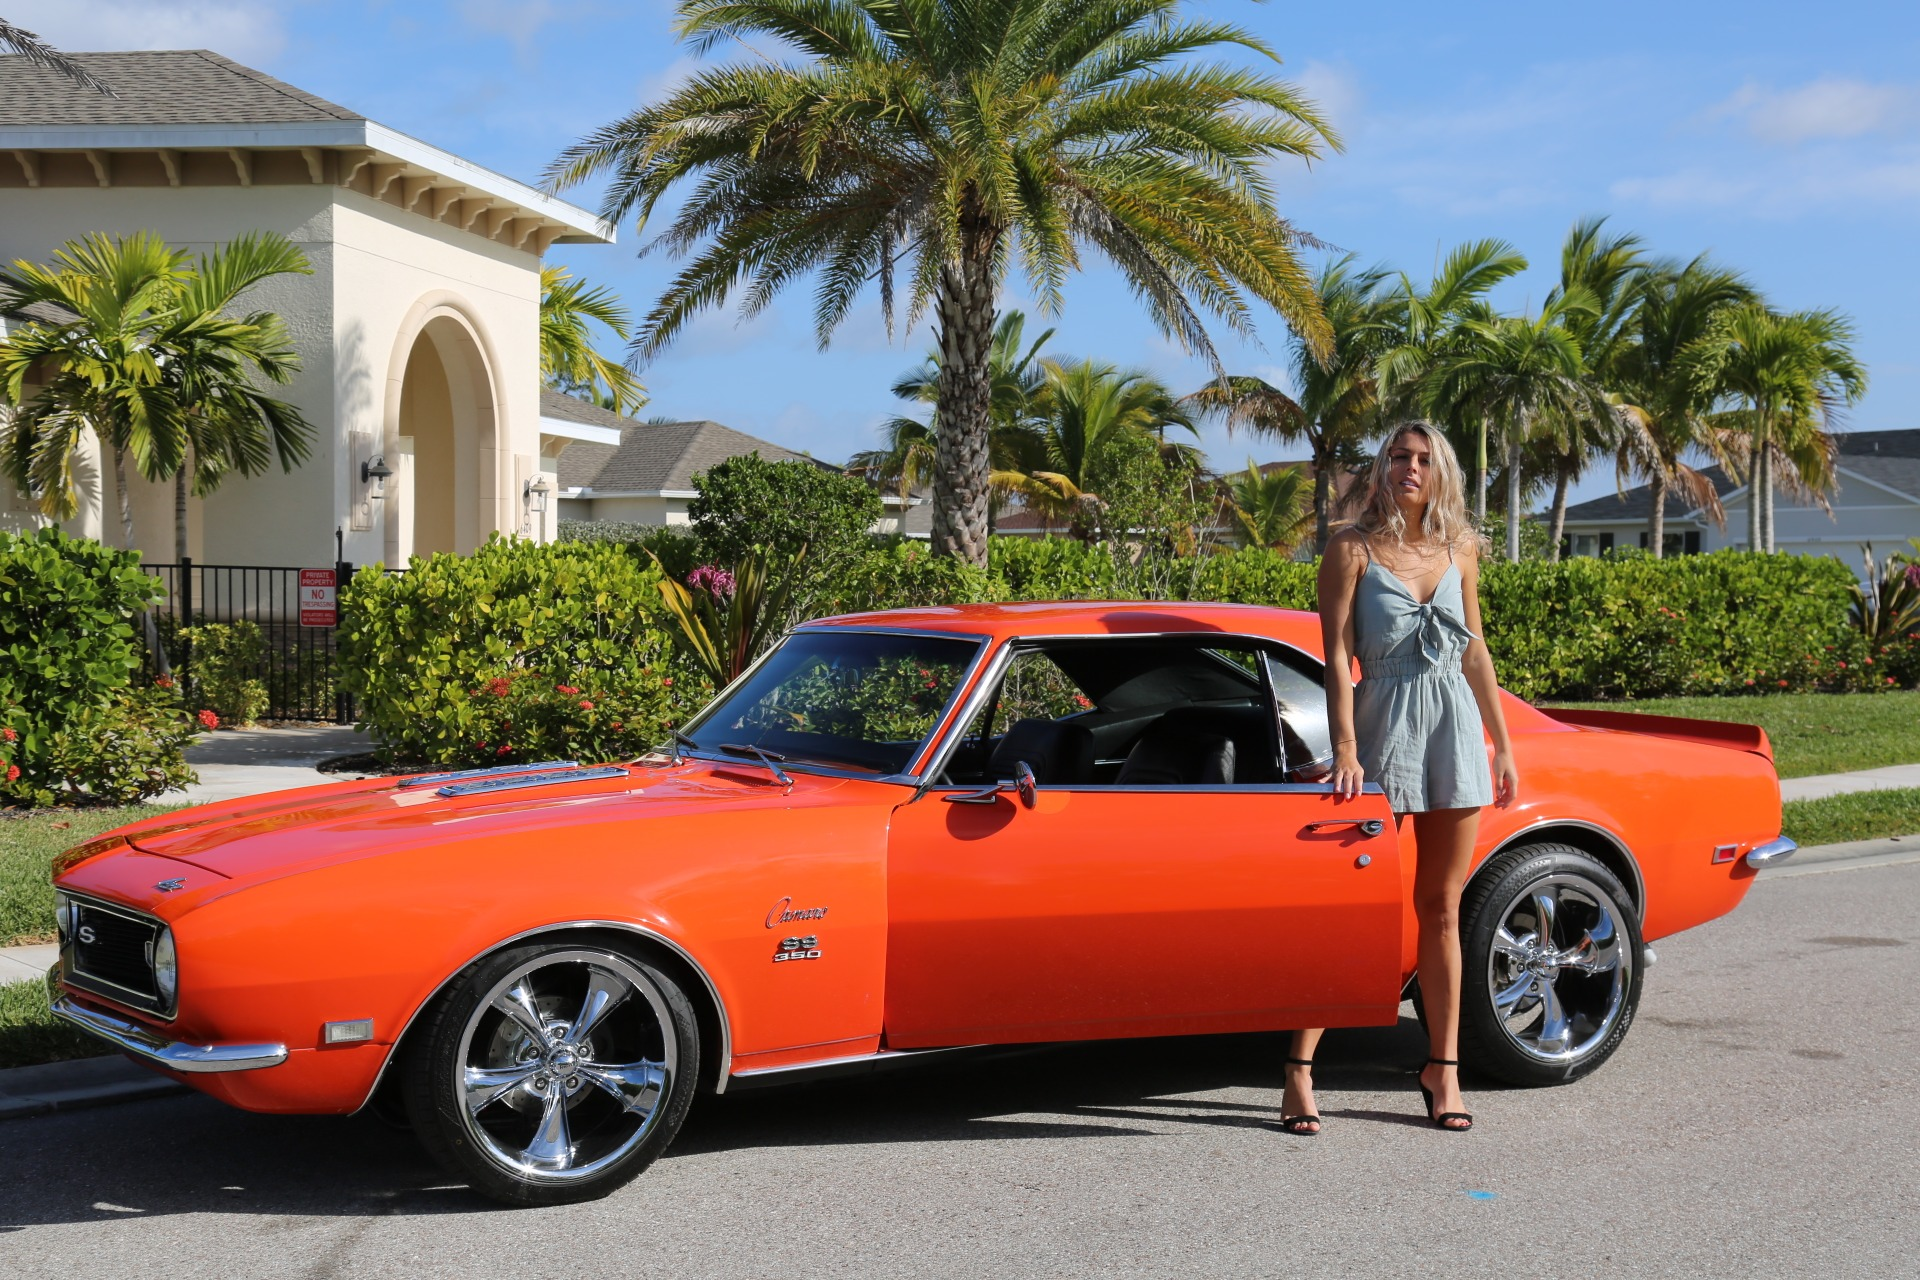 Used 1968 Chevy Camaro V8 4 Speed Manual for sale $31,000 at Muscle Cars for Sale Inc. in Fort Myers FL 33912 2